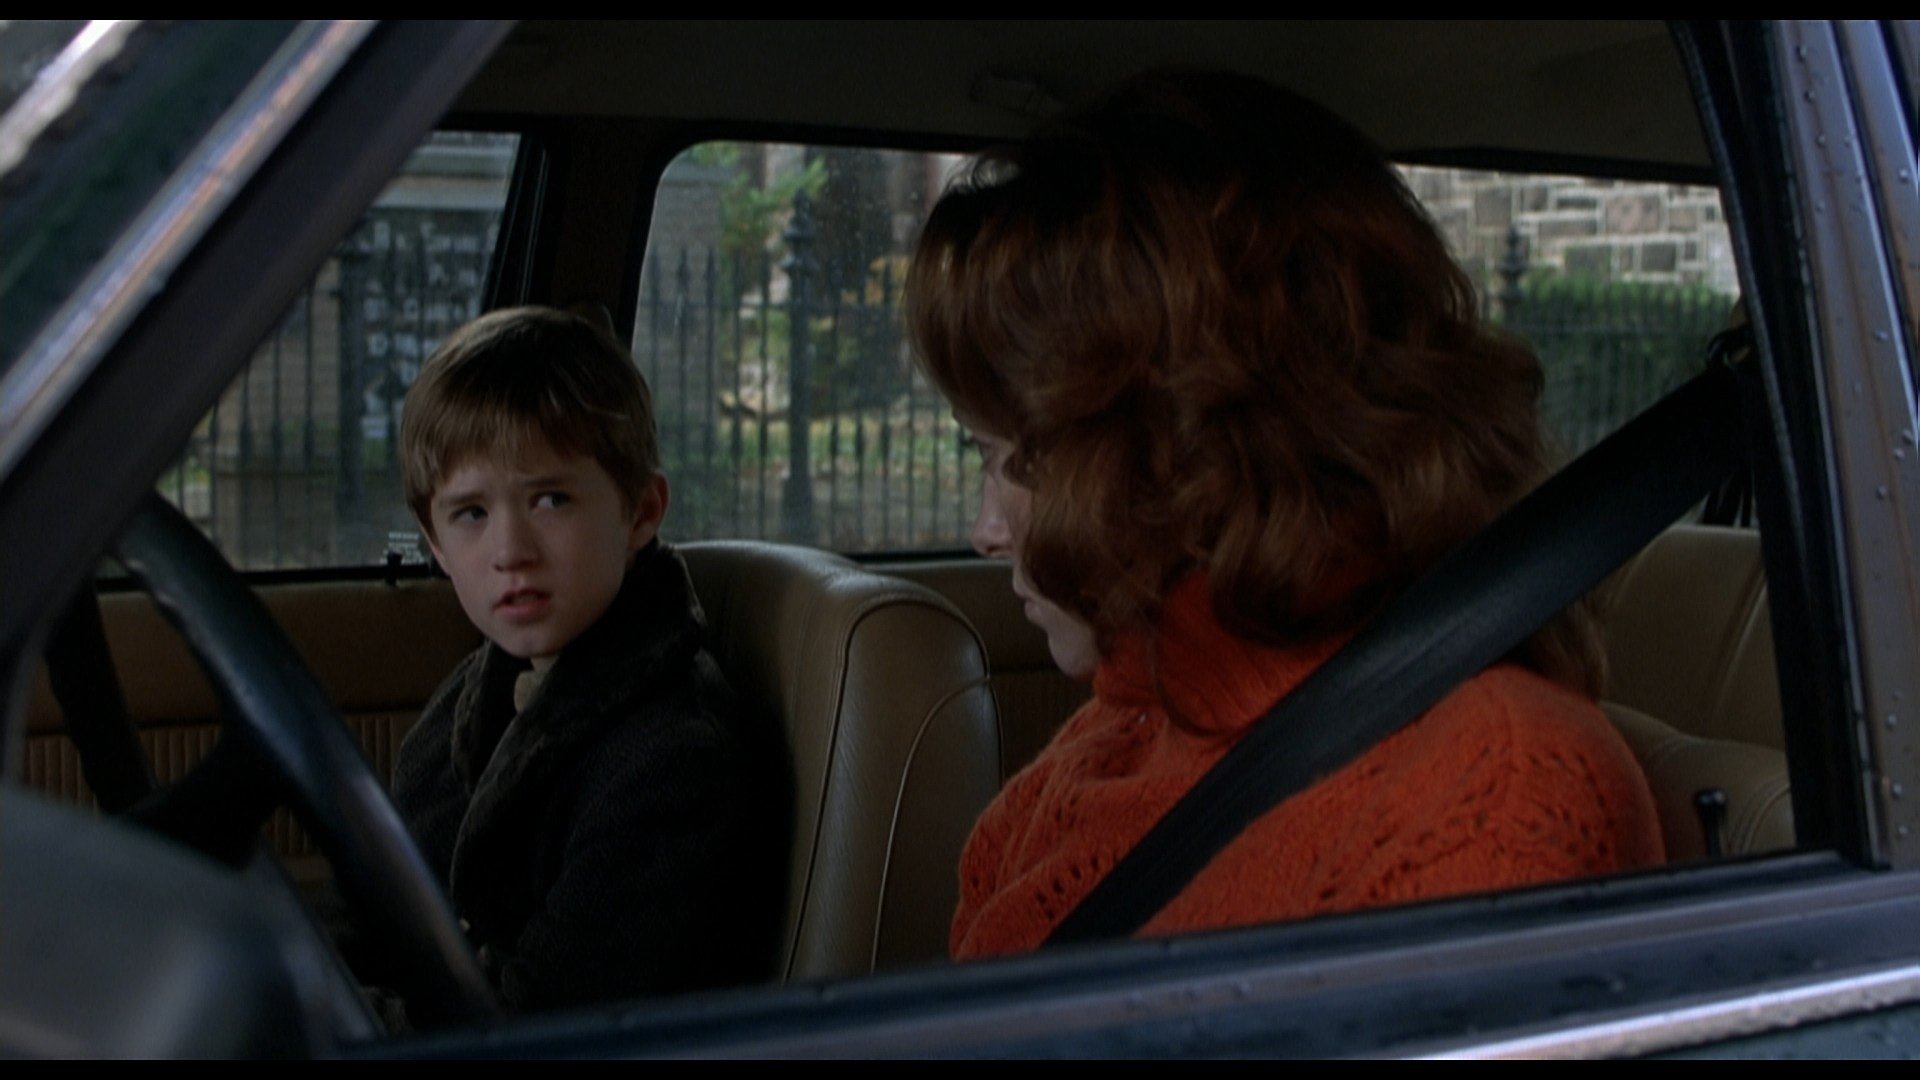 haley joel osment the movie rat the sixth sense 1999 touchstone pictures